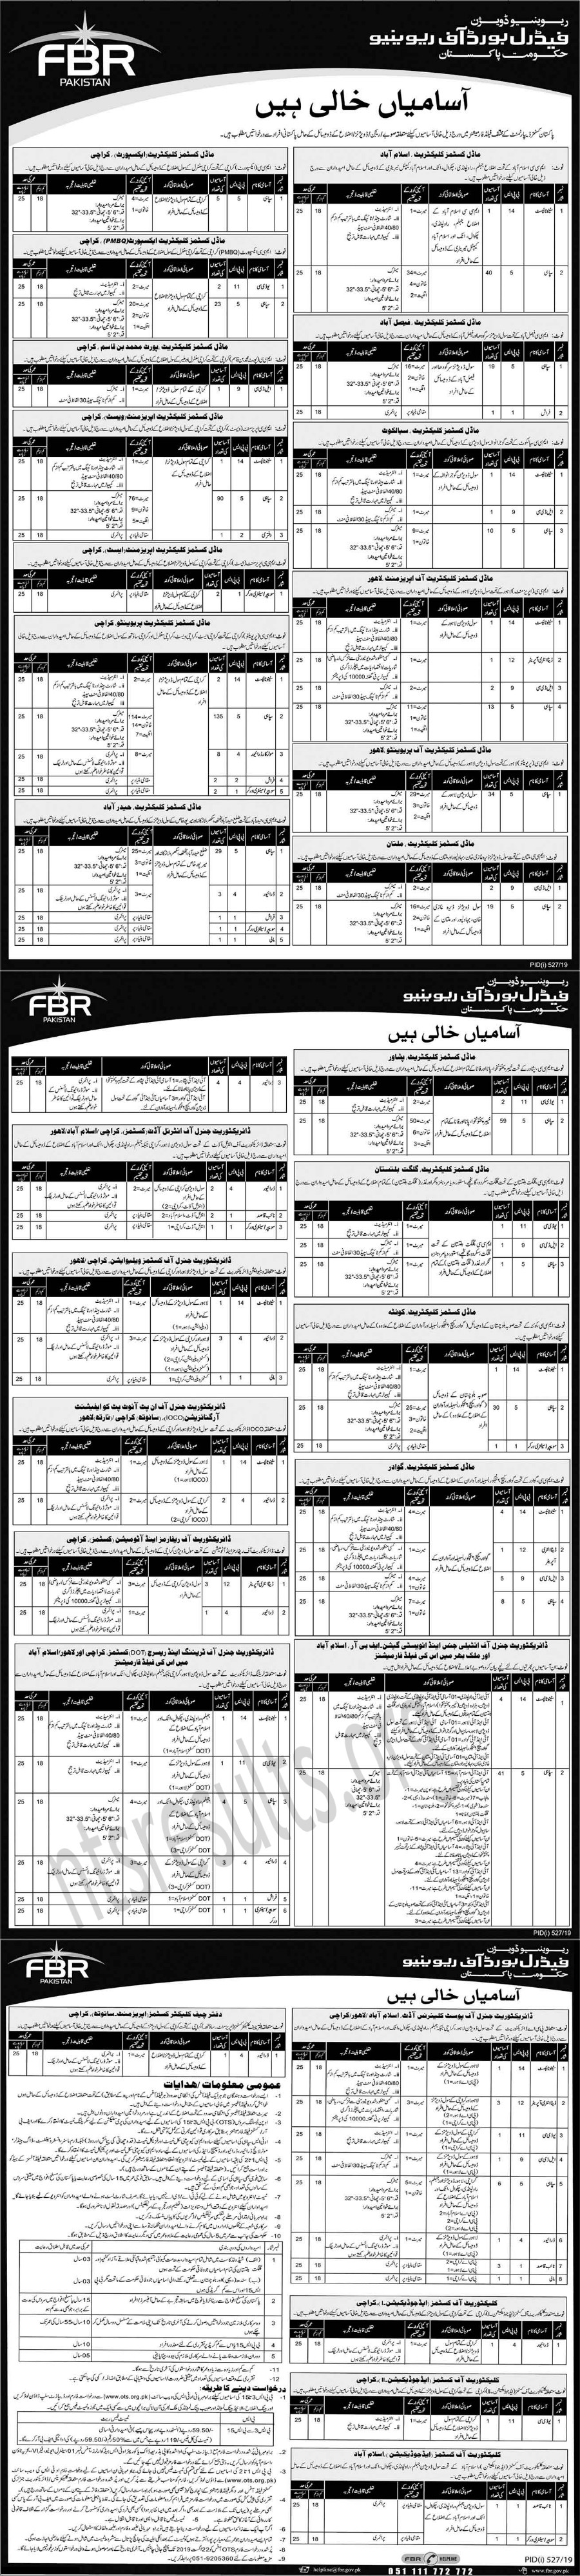 Federal Board of Revenue FBR Jobs Via OTS